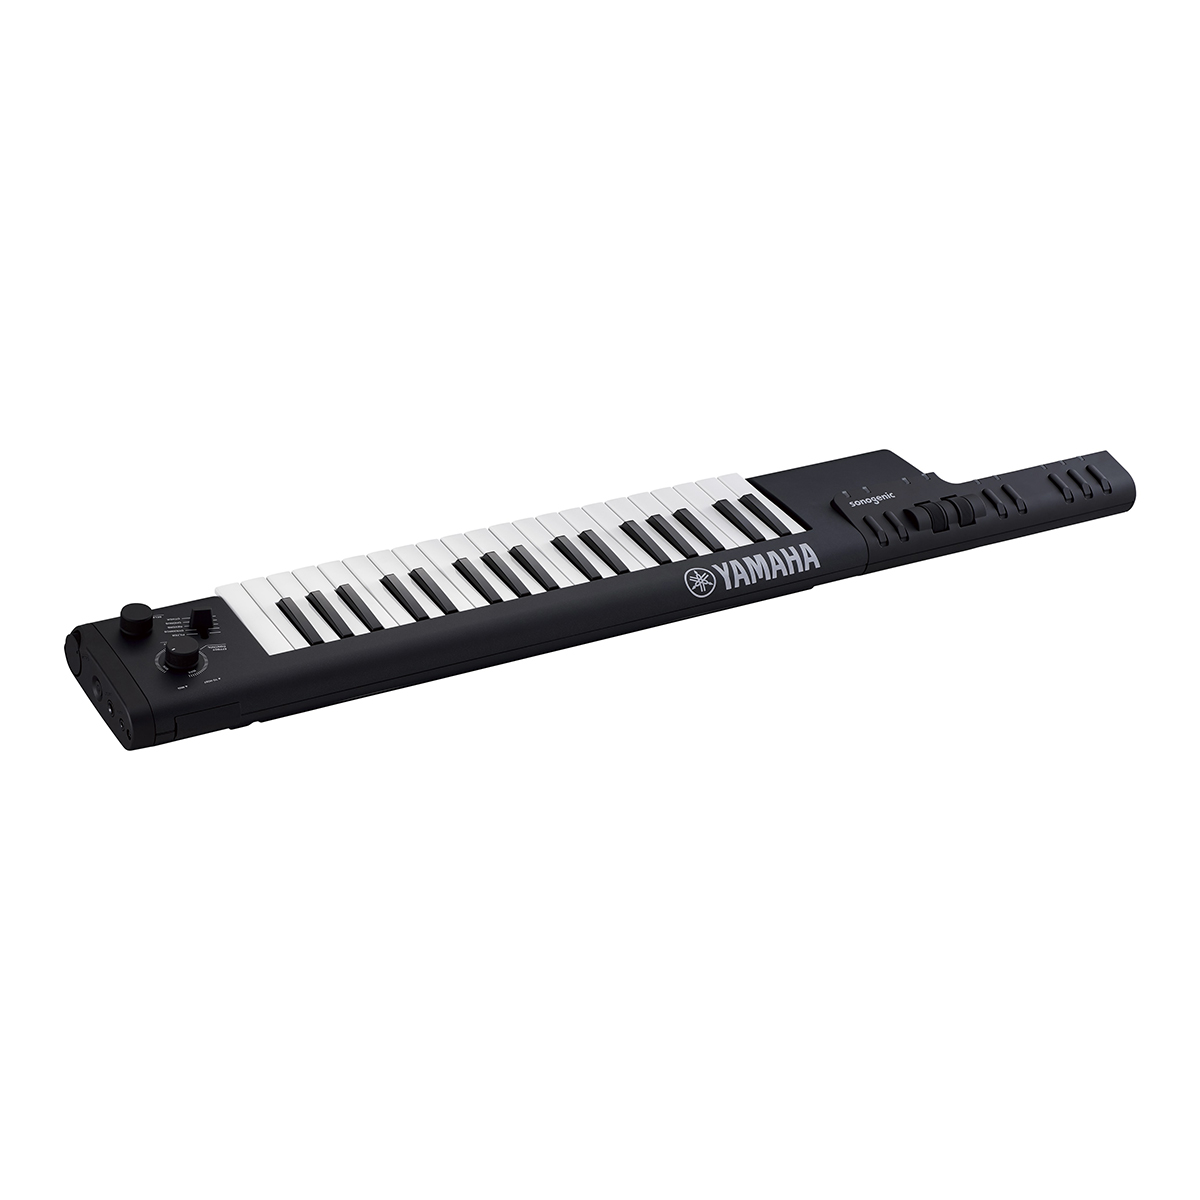 Yamaha - Sonogenic SHS-500 noir - Clavier guitare 37 mini touches